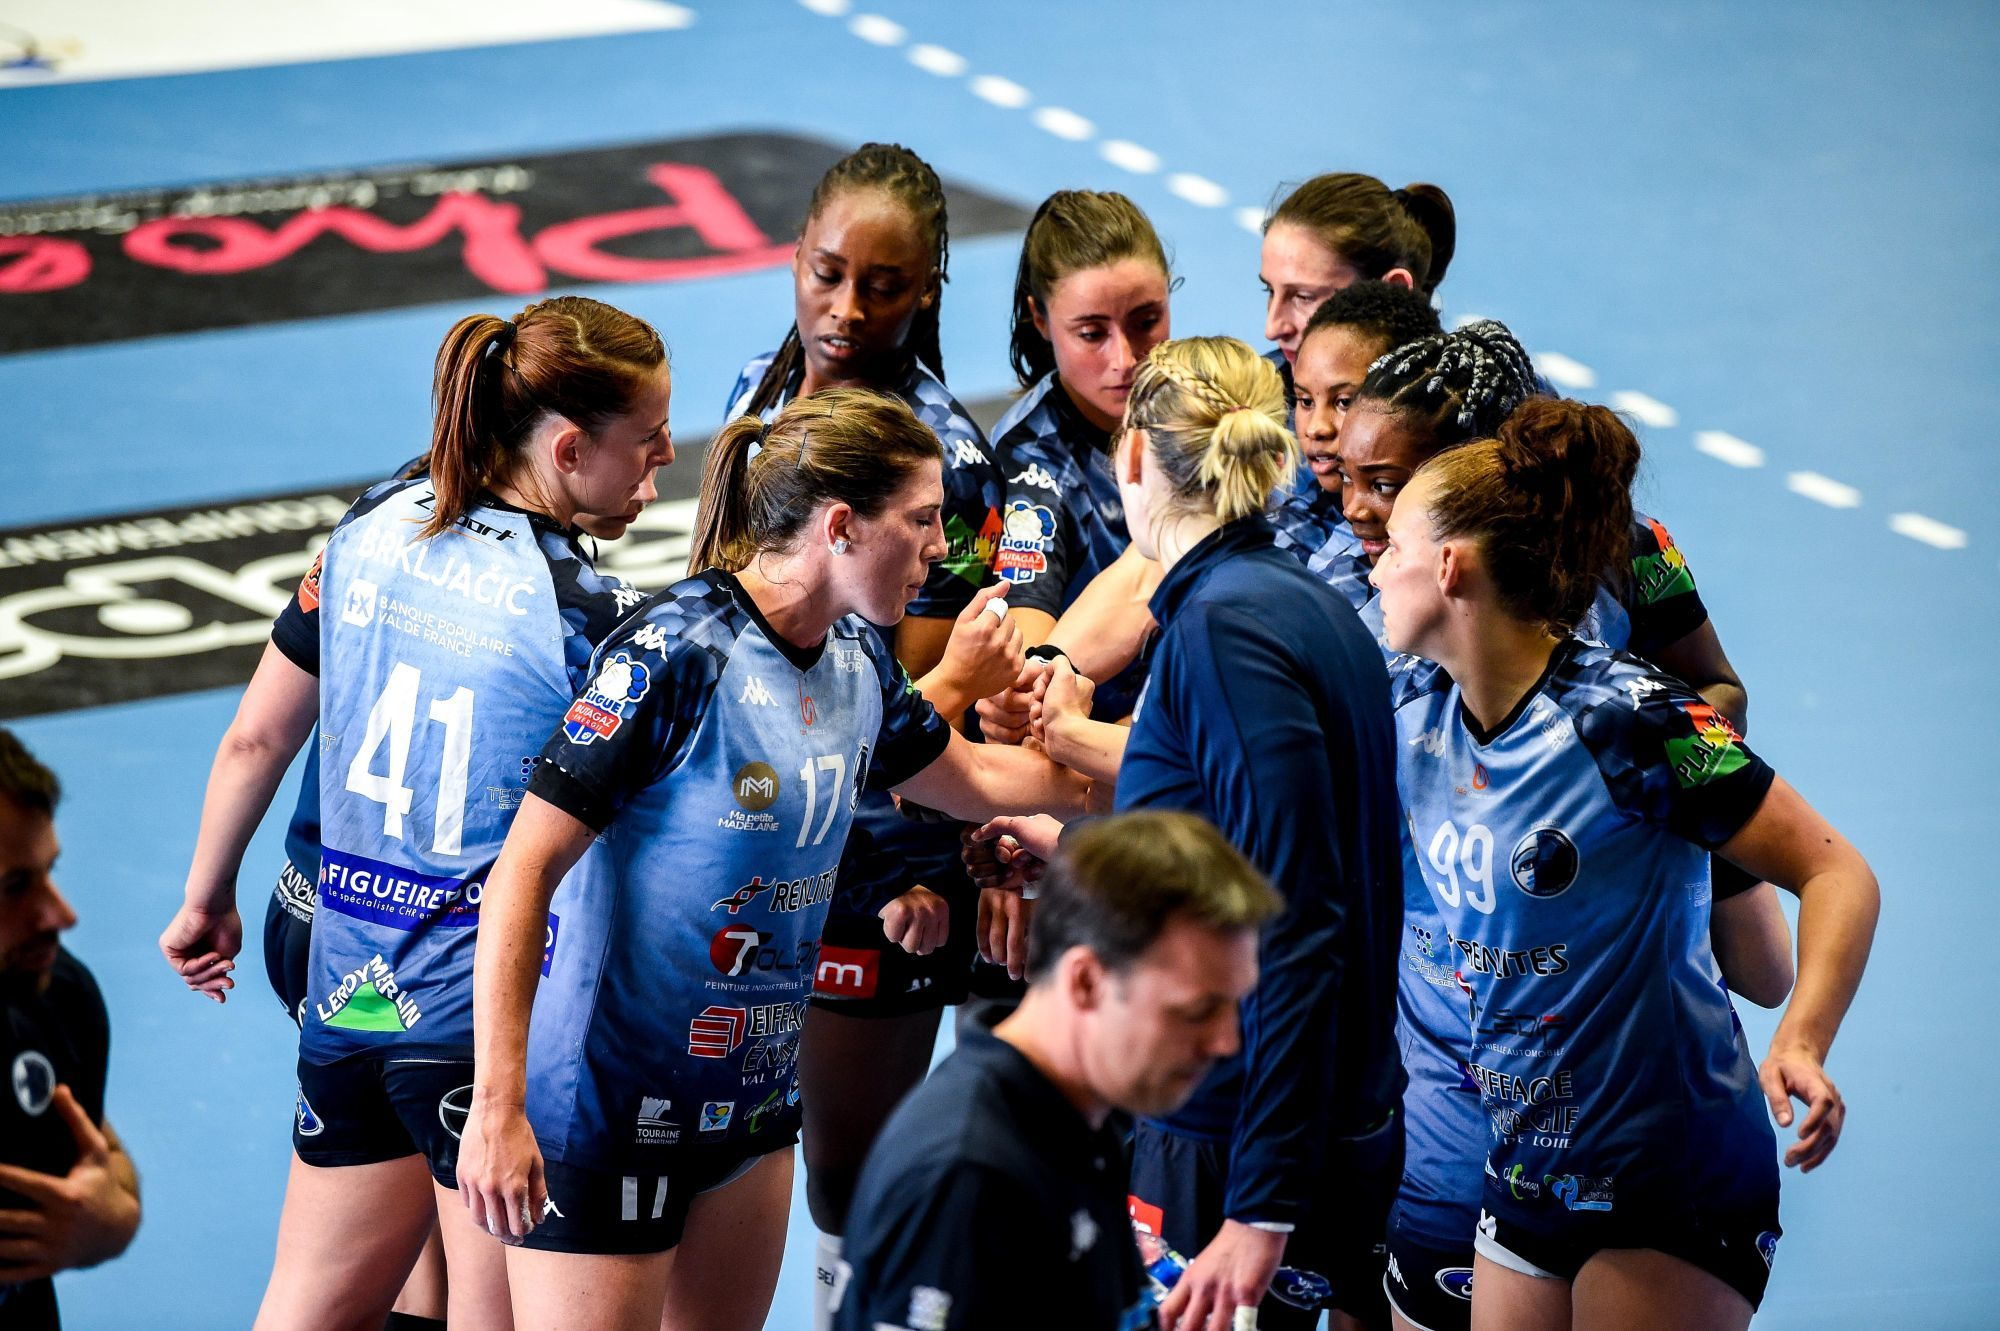 Team of CTHB during the Ligue Butagaz Energie match between Chambray and Paris 92 on May 8, 2021 in Chambray-les-Tours, France. (Photo by Hugo Pfeiffer/Icon Sport) - --- - Gymnase de la Fontaine Blanche - Chambray-les-Tours (France)